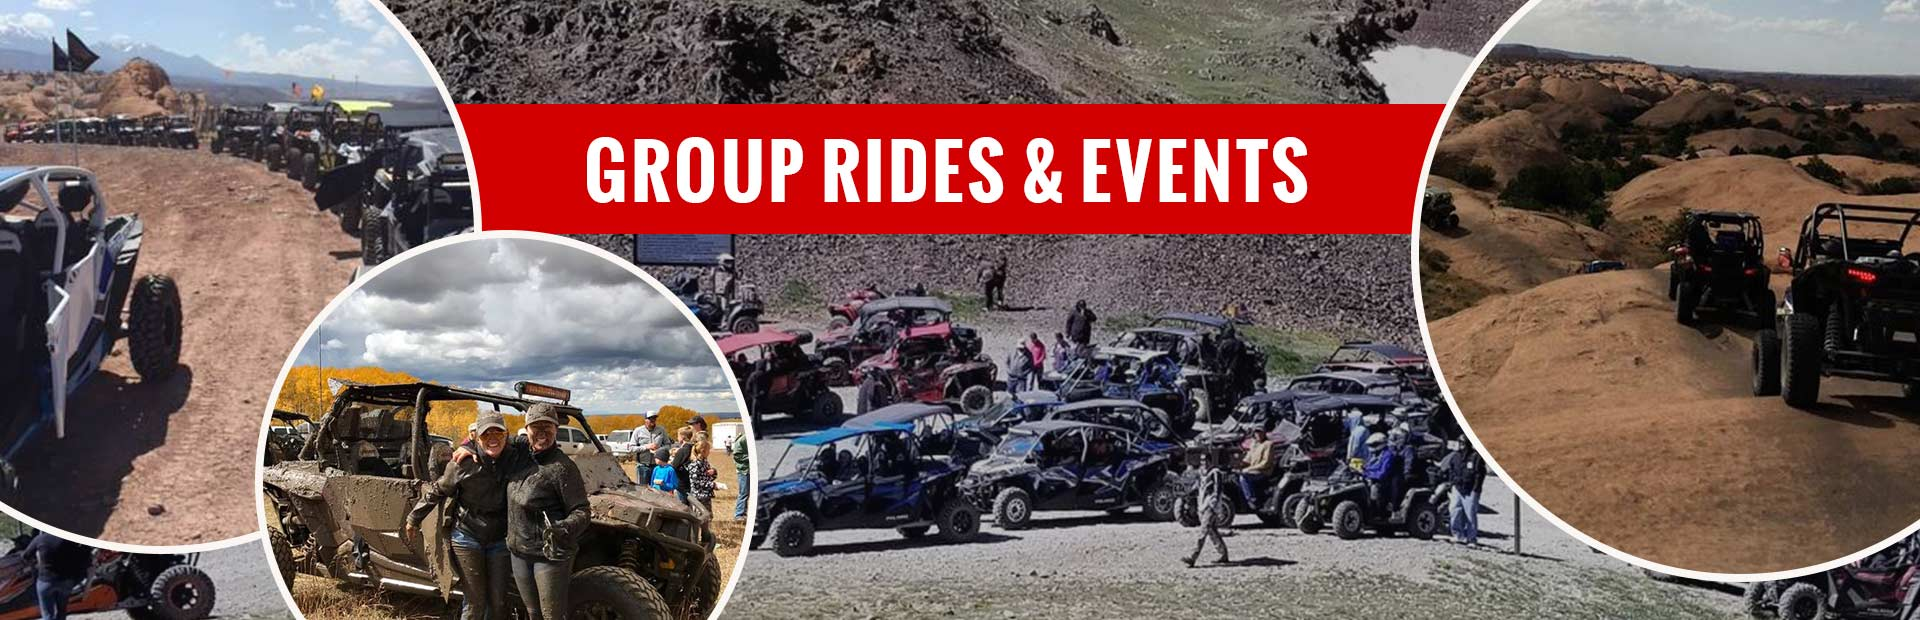 Click here for information on group rides and events!